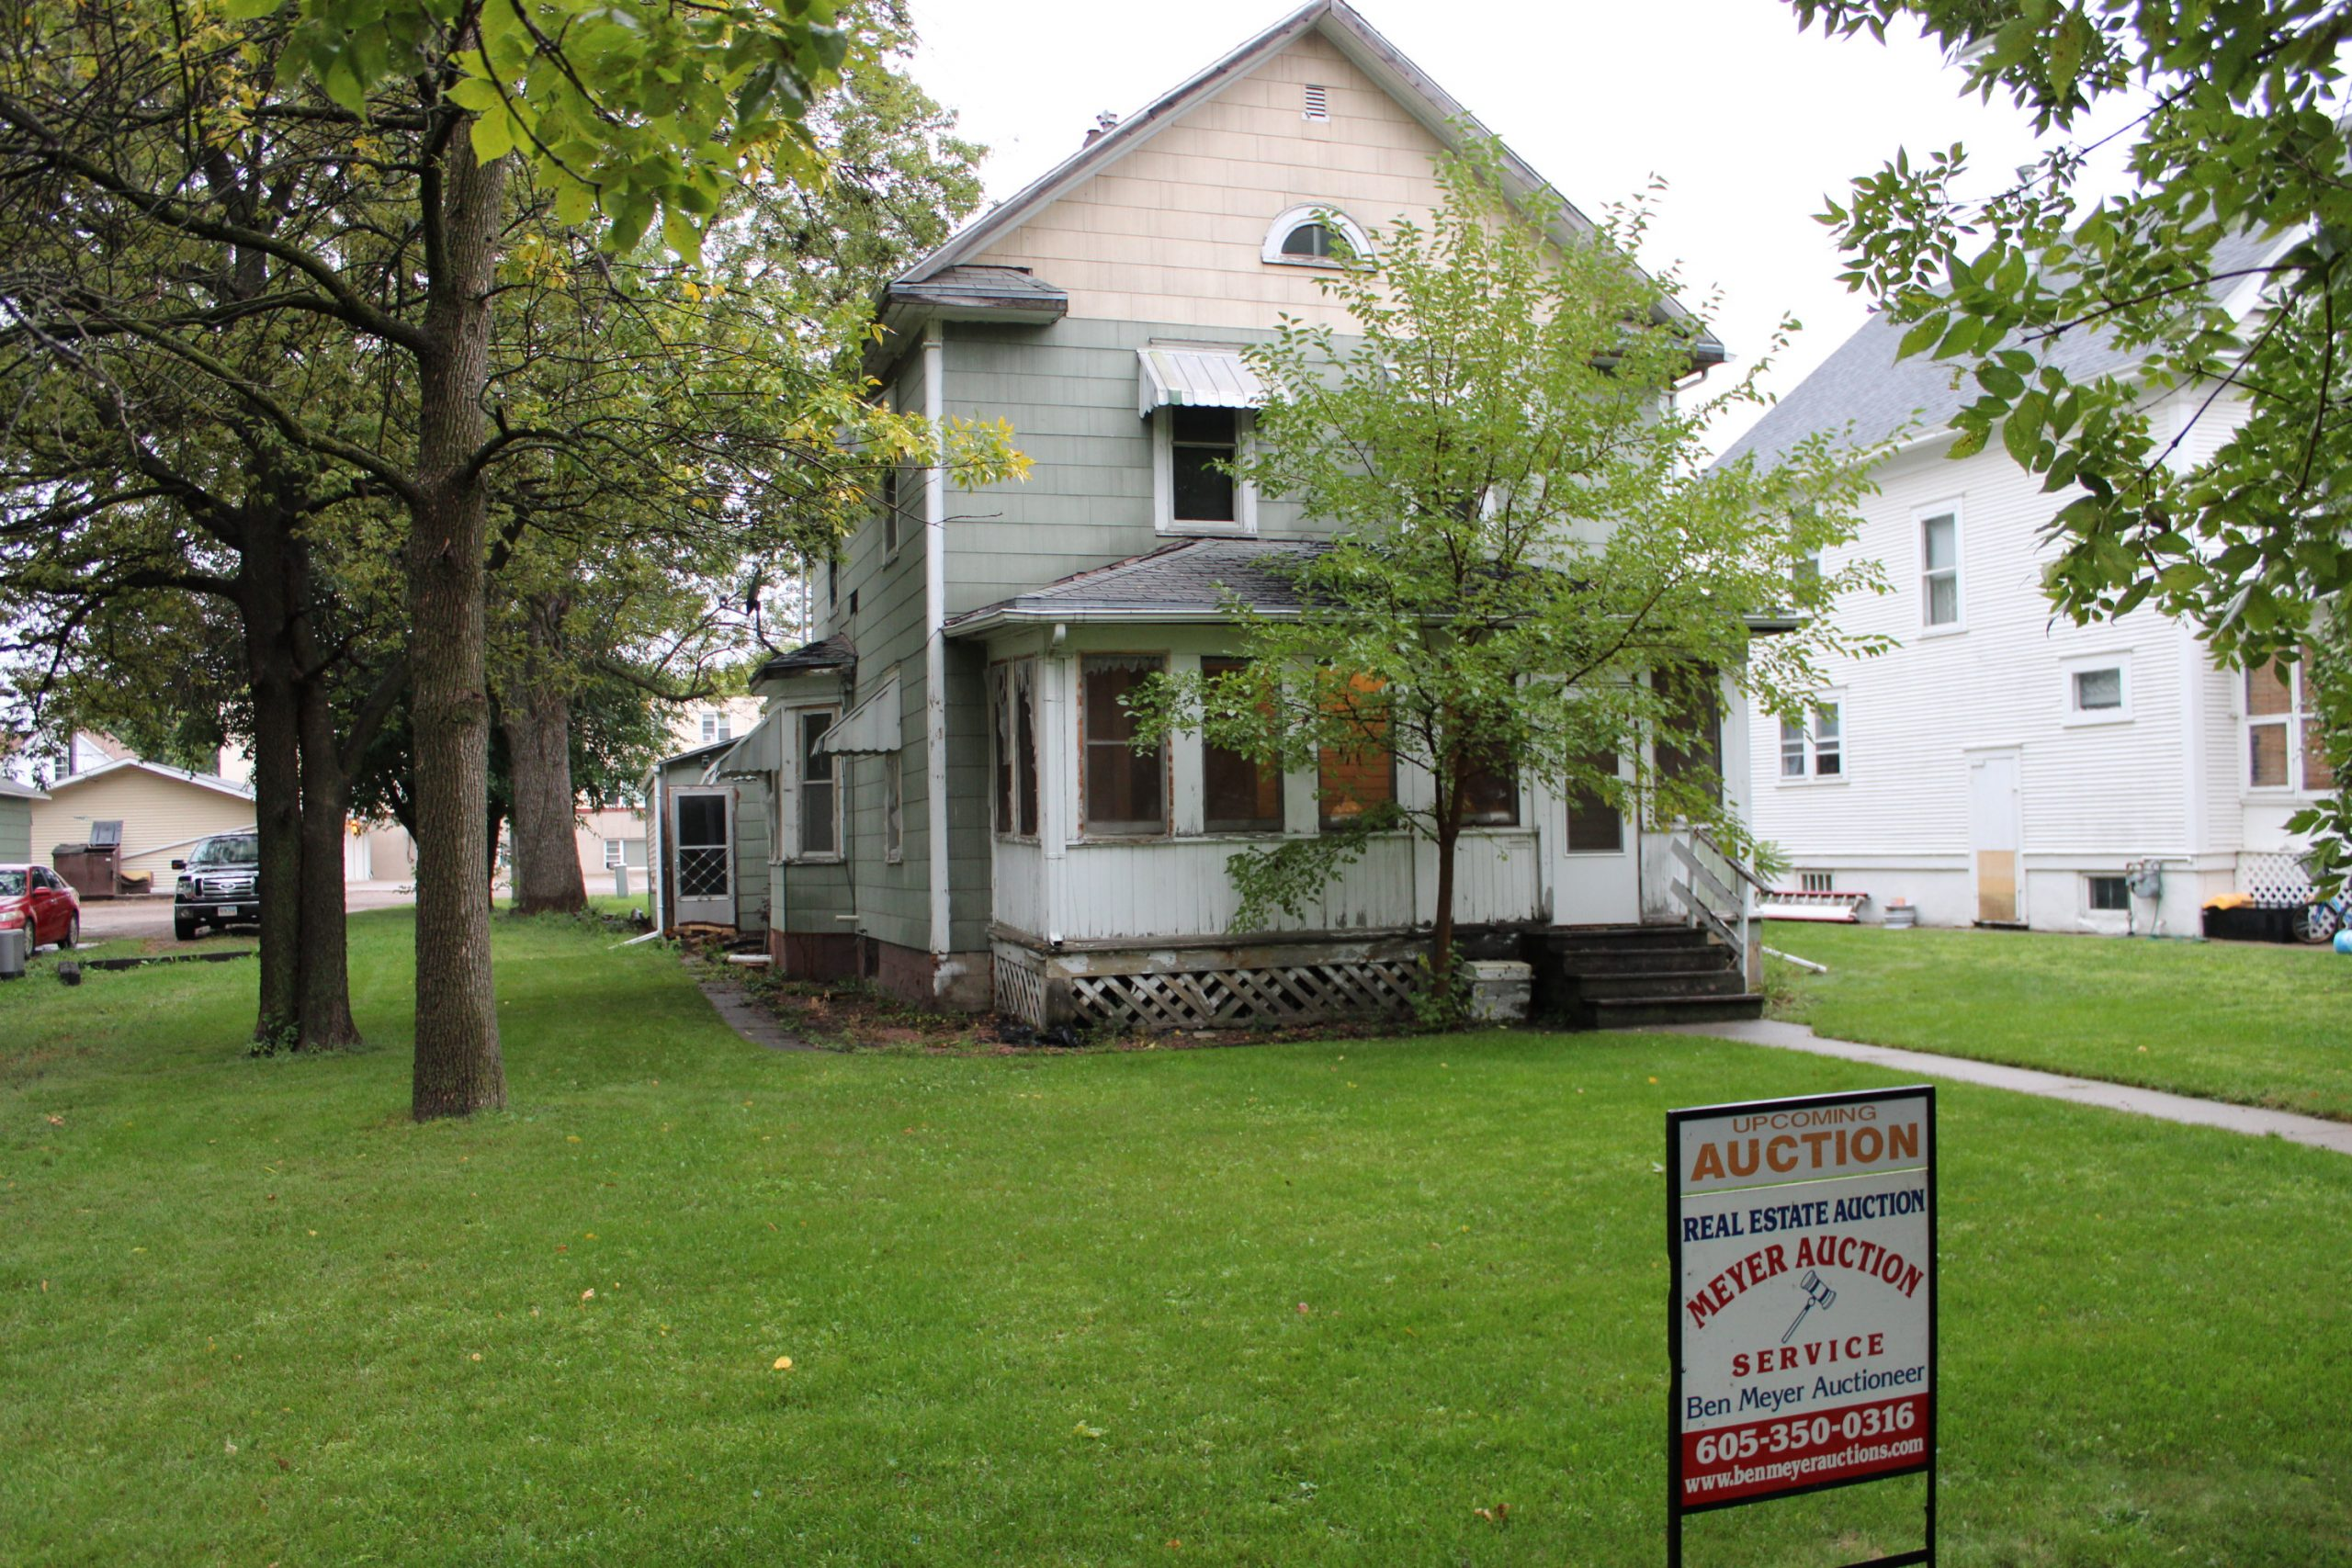 Oct 19 ~ 819 Wisconsin Ave SW, Huron House LIVE Auction 3:30pm